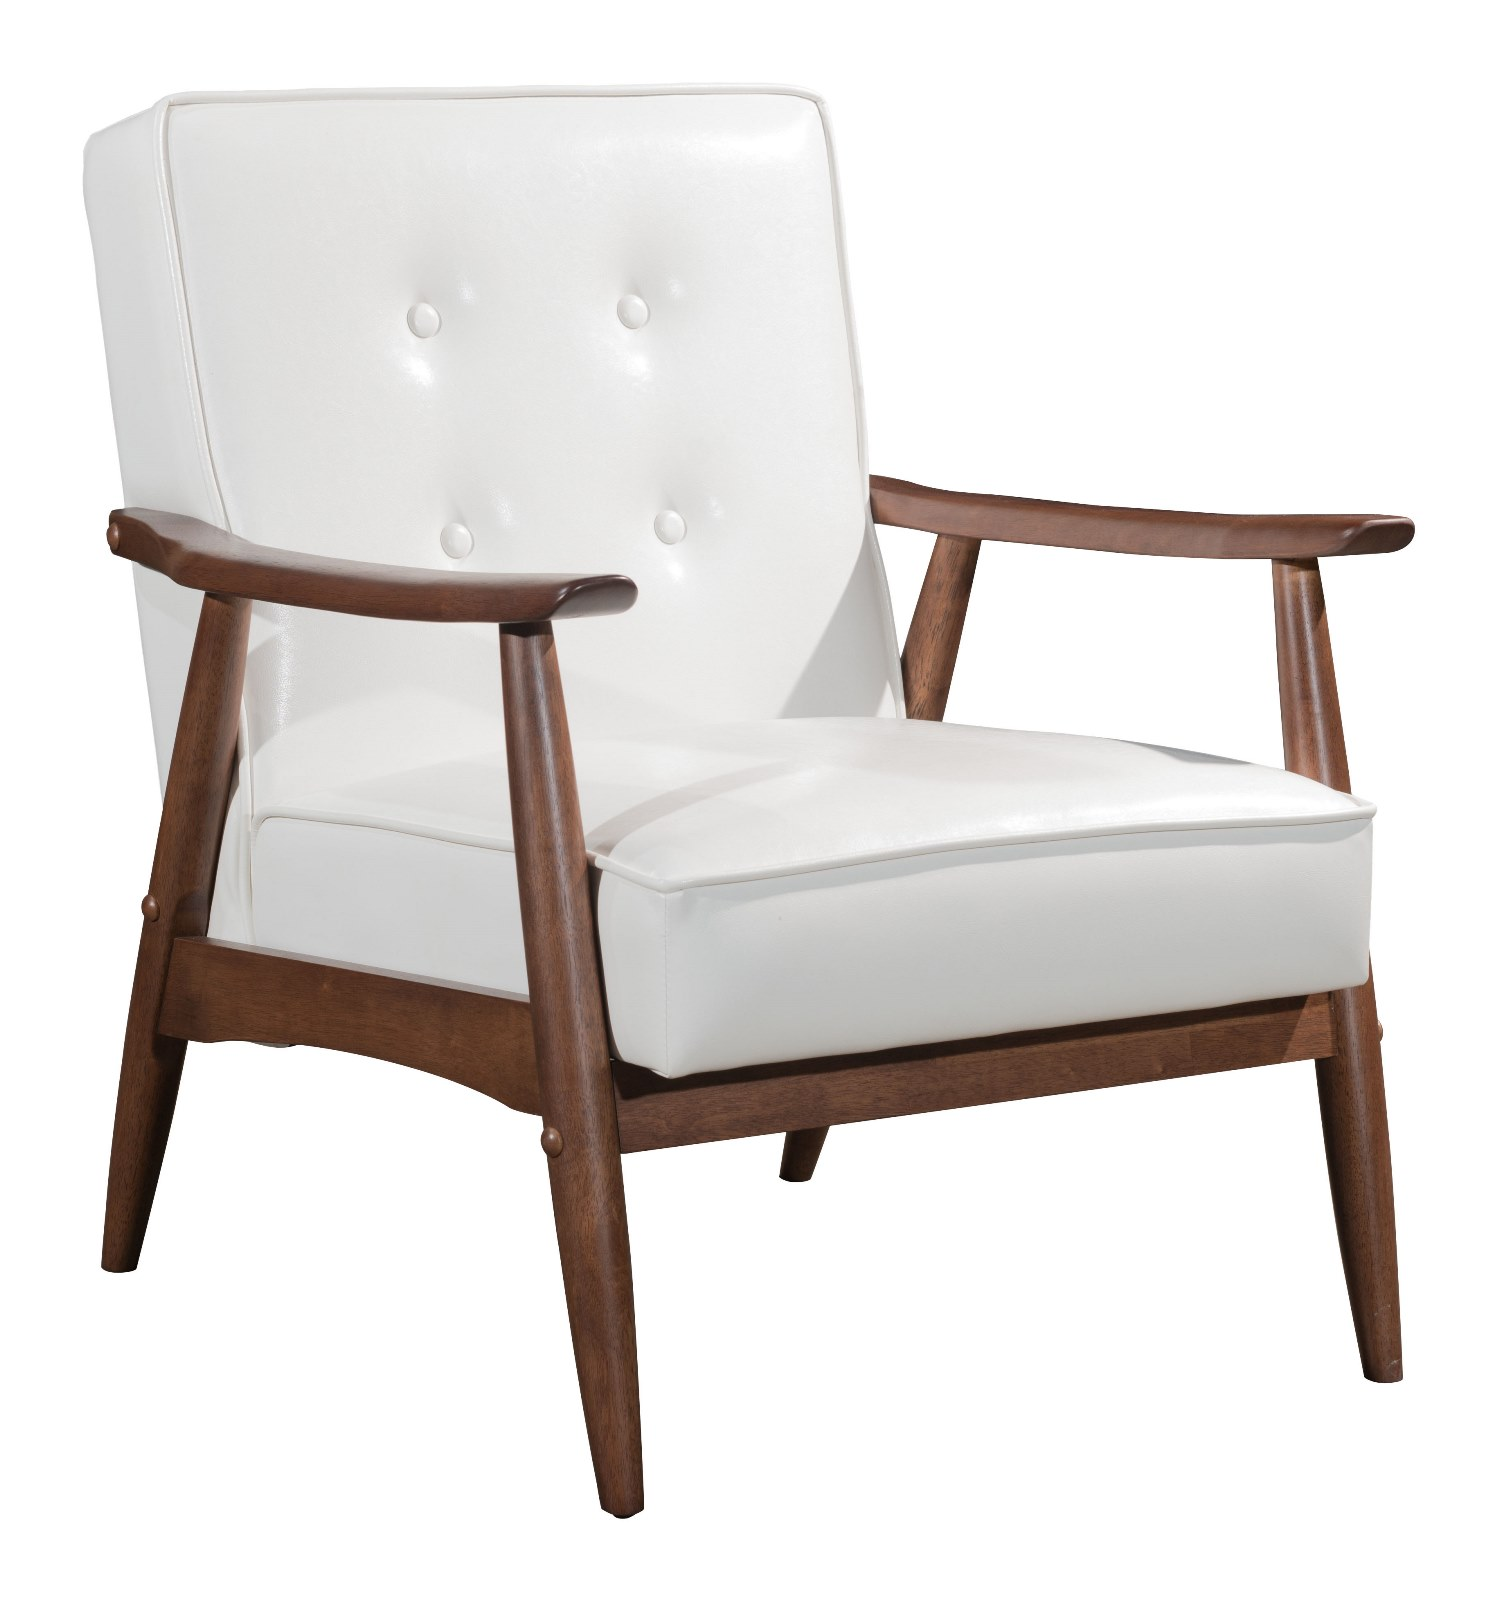 Modern Contemporary Urban Living Room Office Lounge Armchair, White - Faux Leather Leatherette Rubber Wood